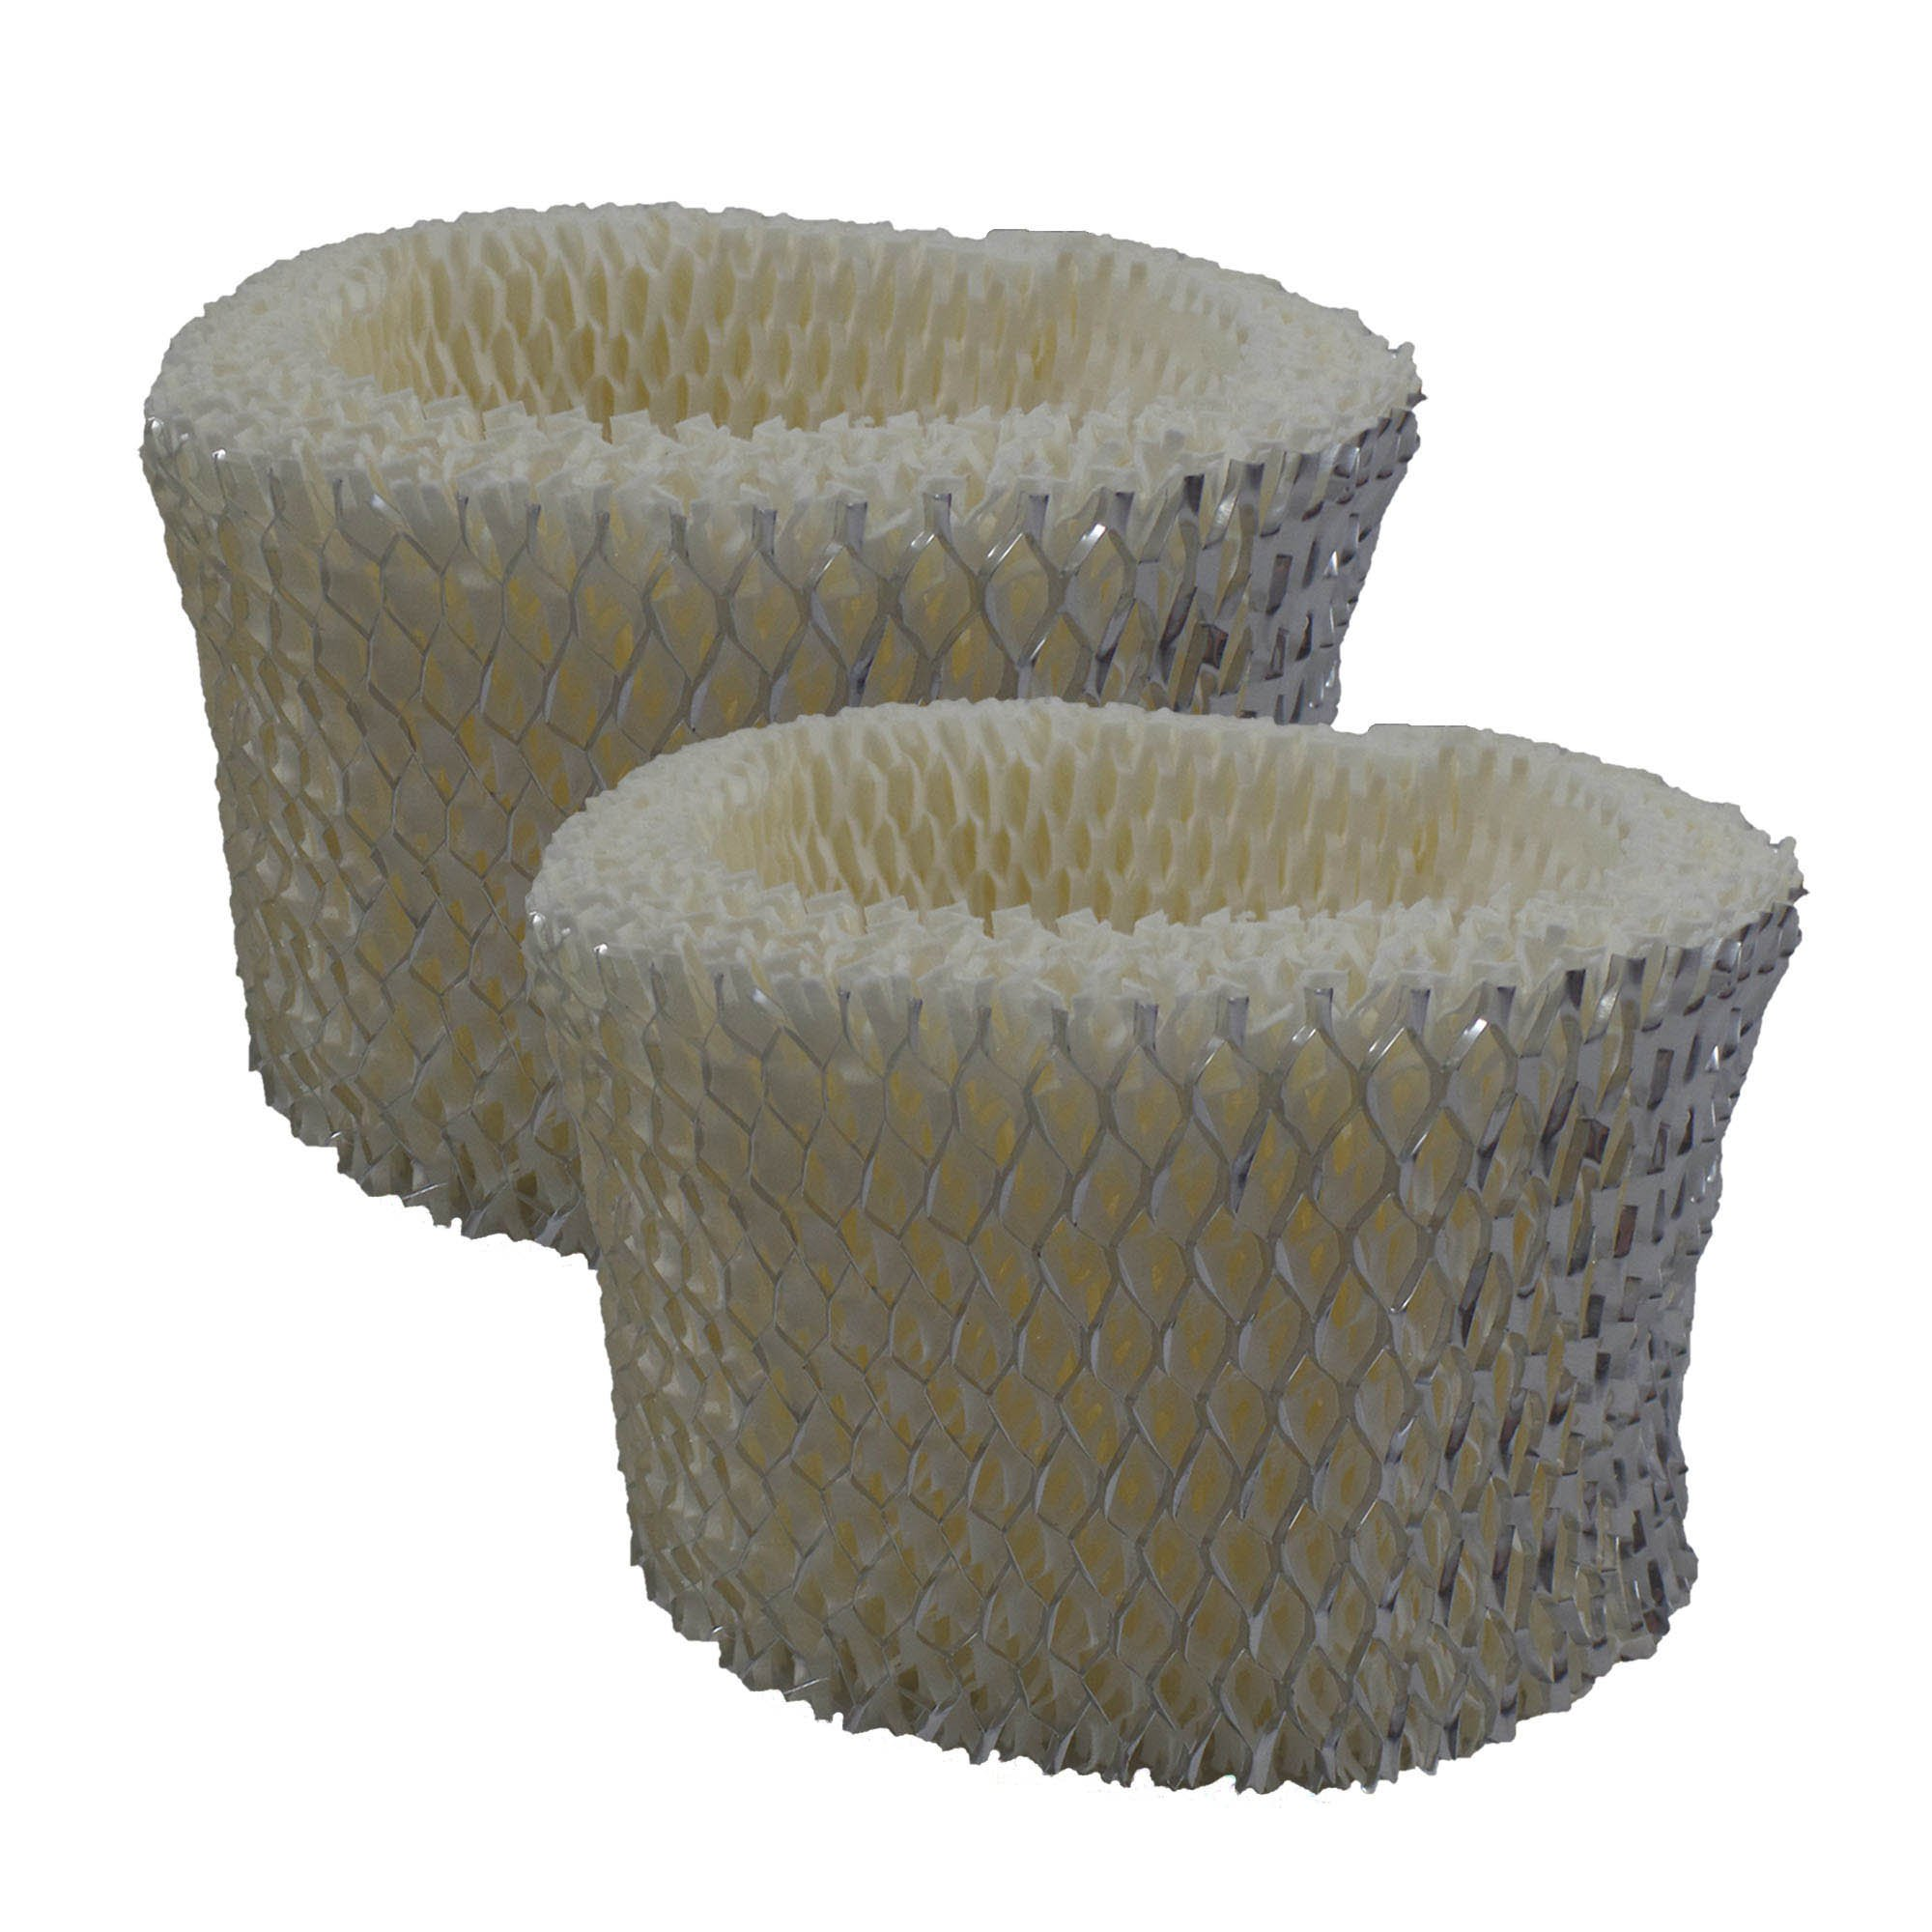 Air Filter Factory Compatible Replacement For Gerry H62/85, H650 Humidifier Filter